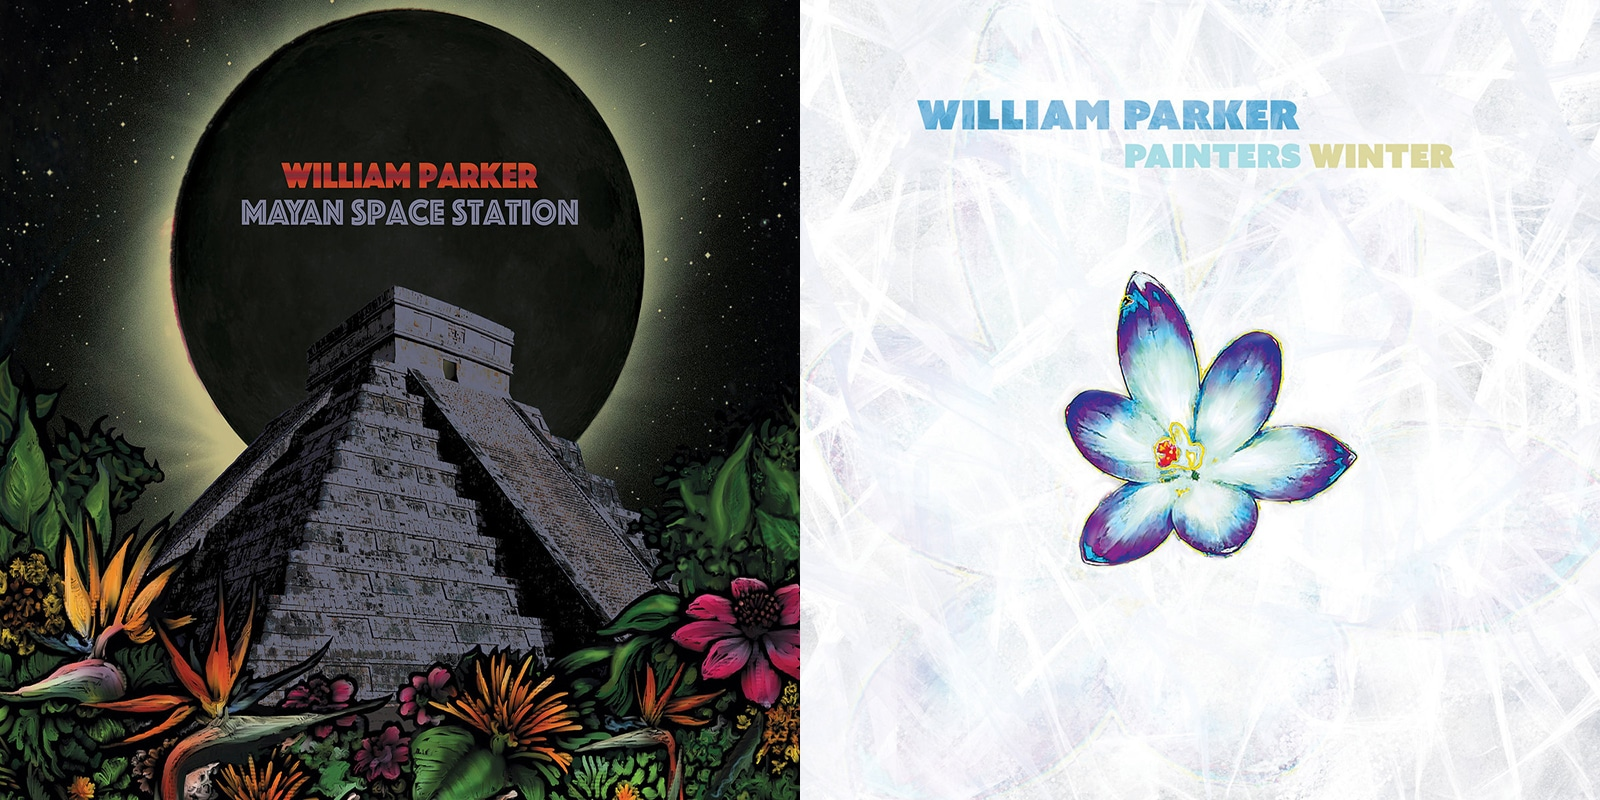 William Parker Mayan Space Station - Painter's Winter